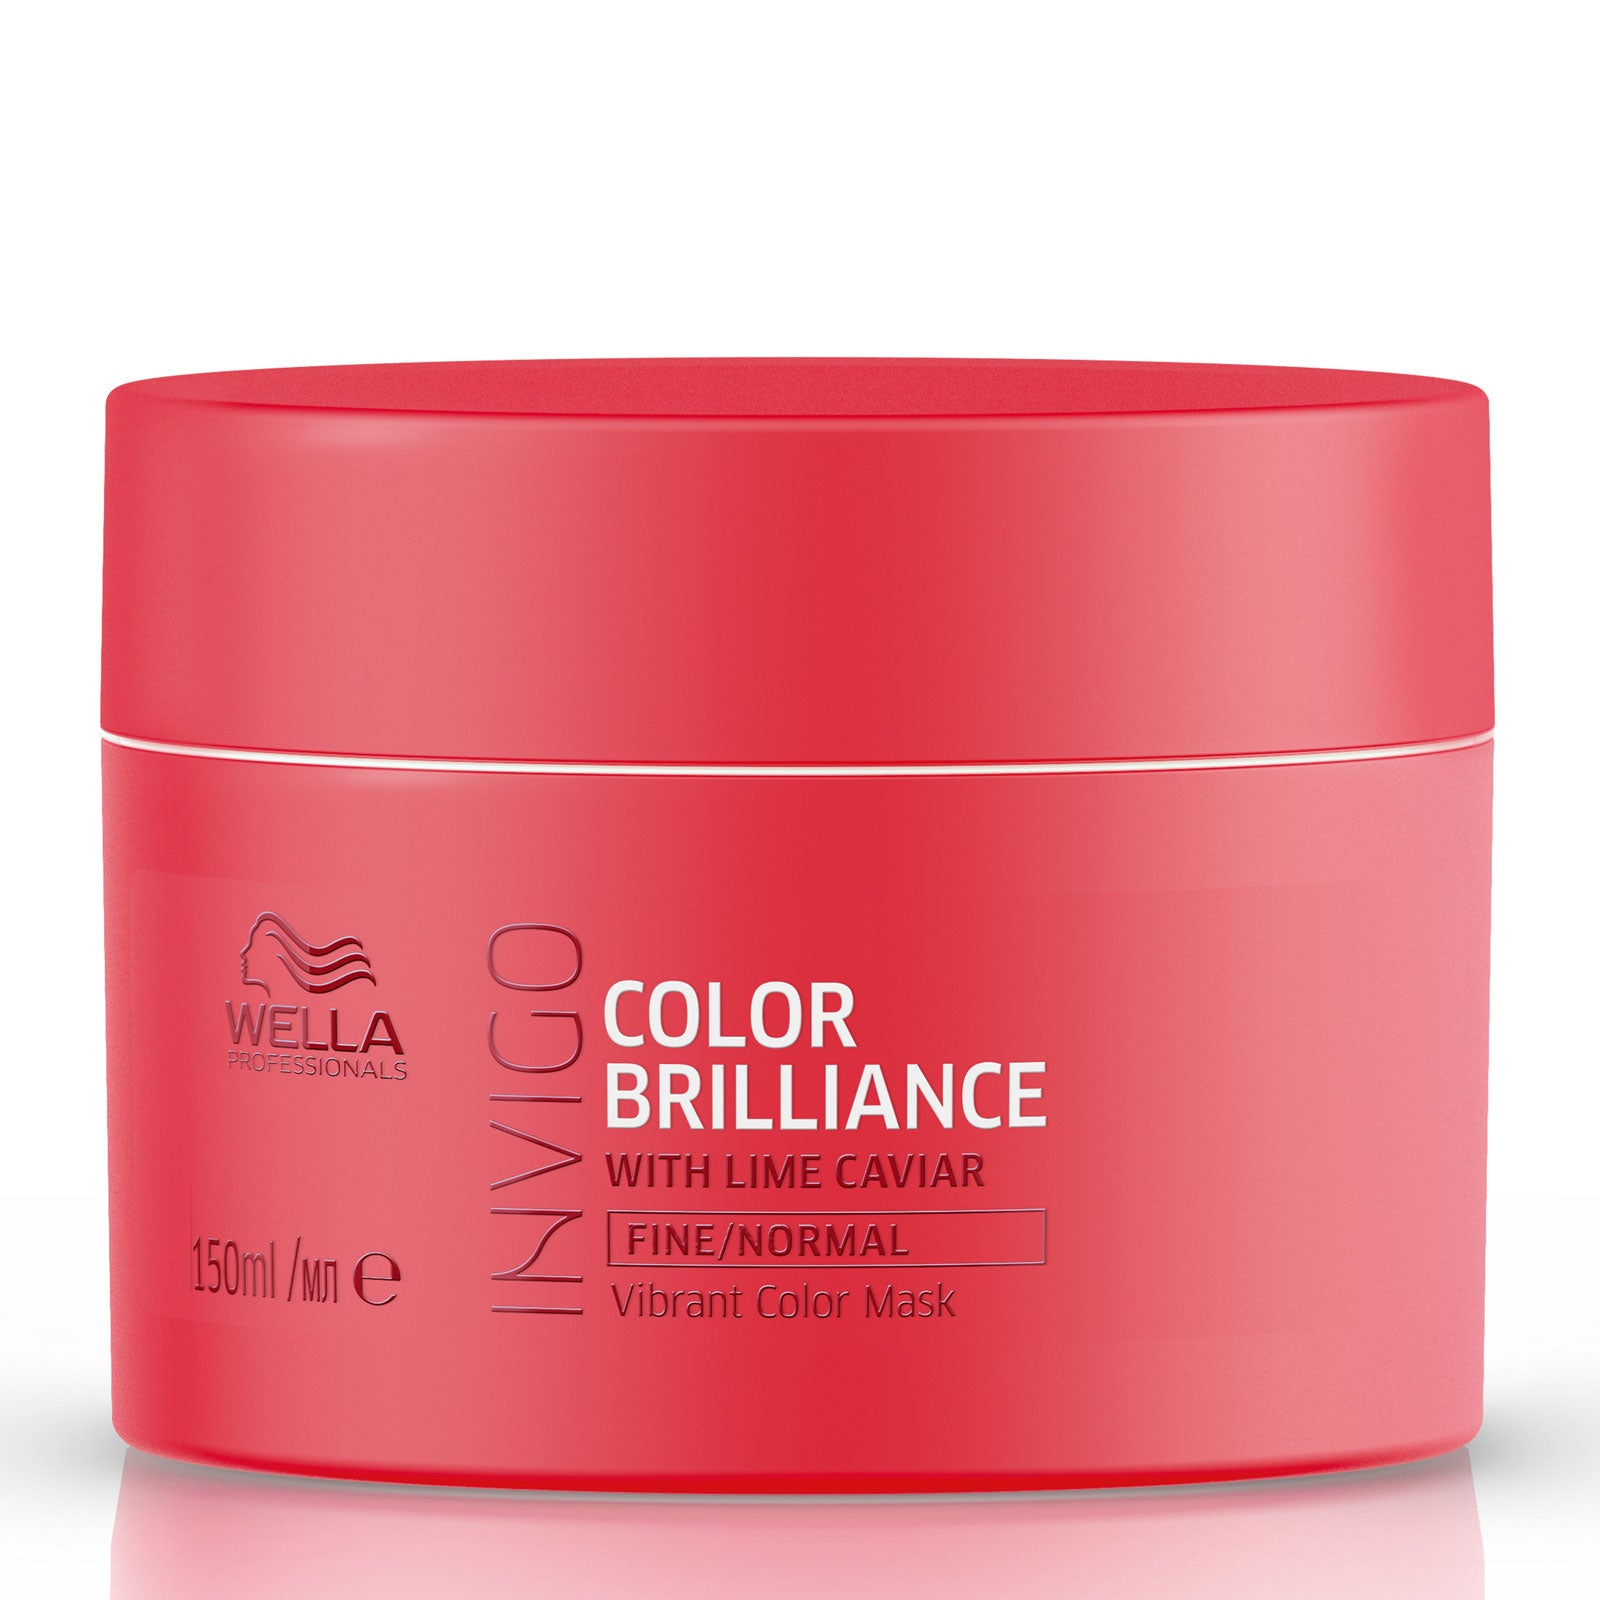 Wella Professionals INVIGO Color Brilliance Vibrant Color Mask - Fine 150ml